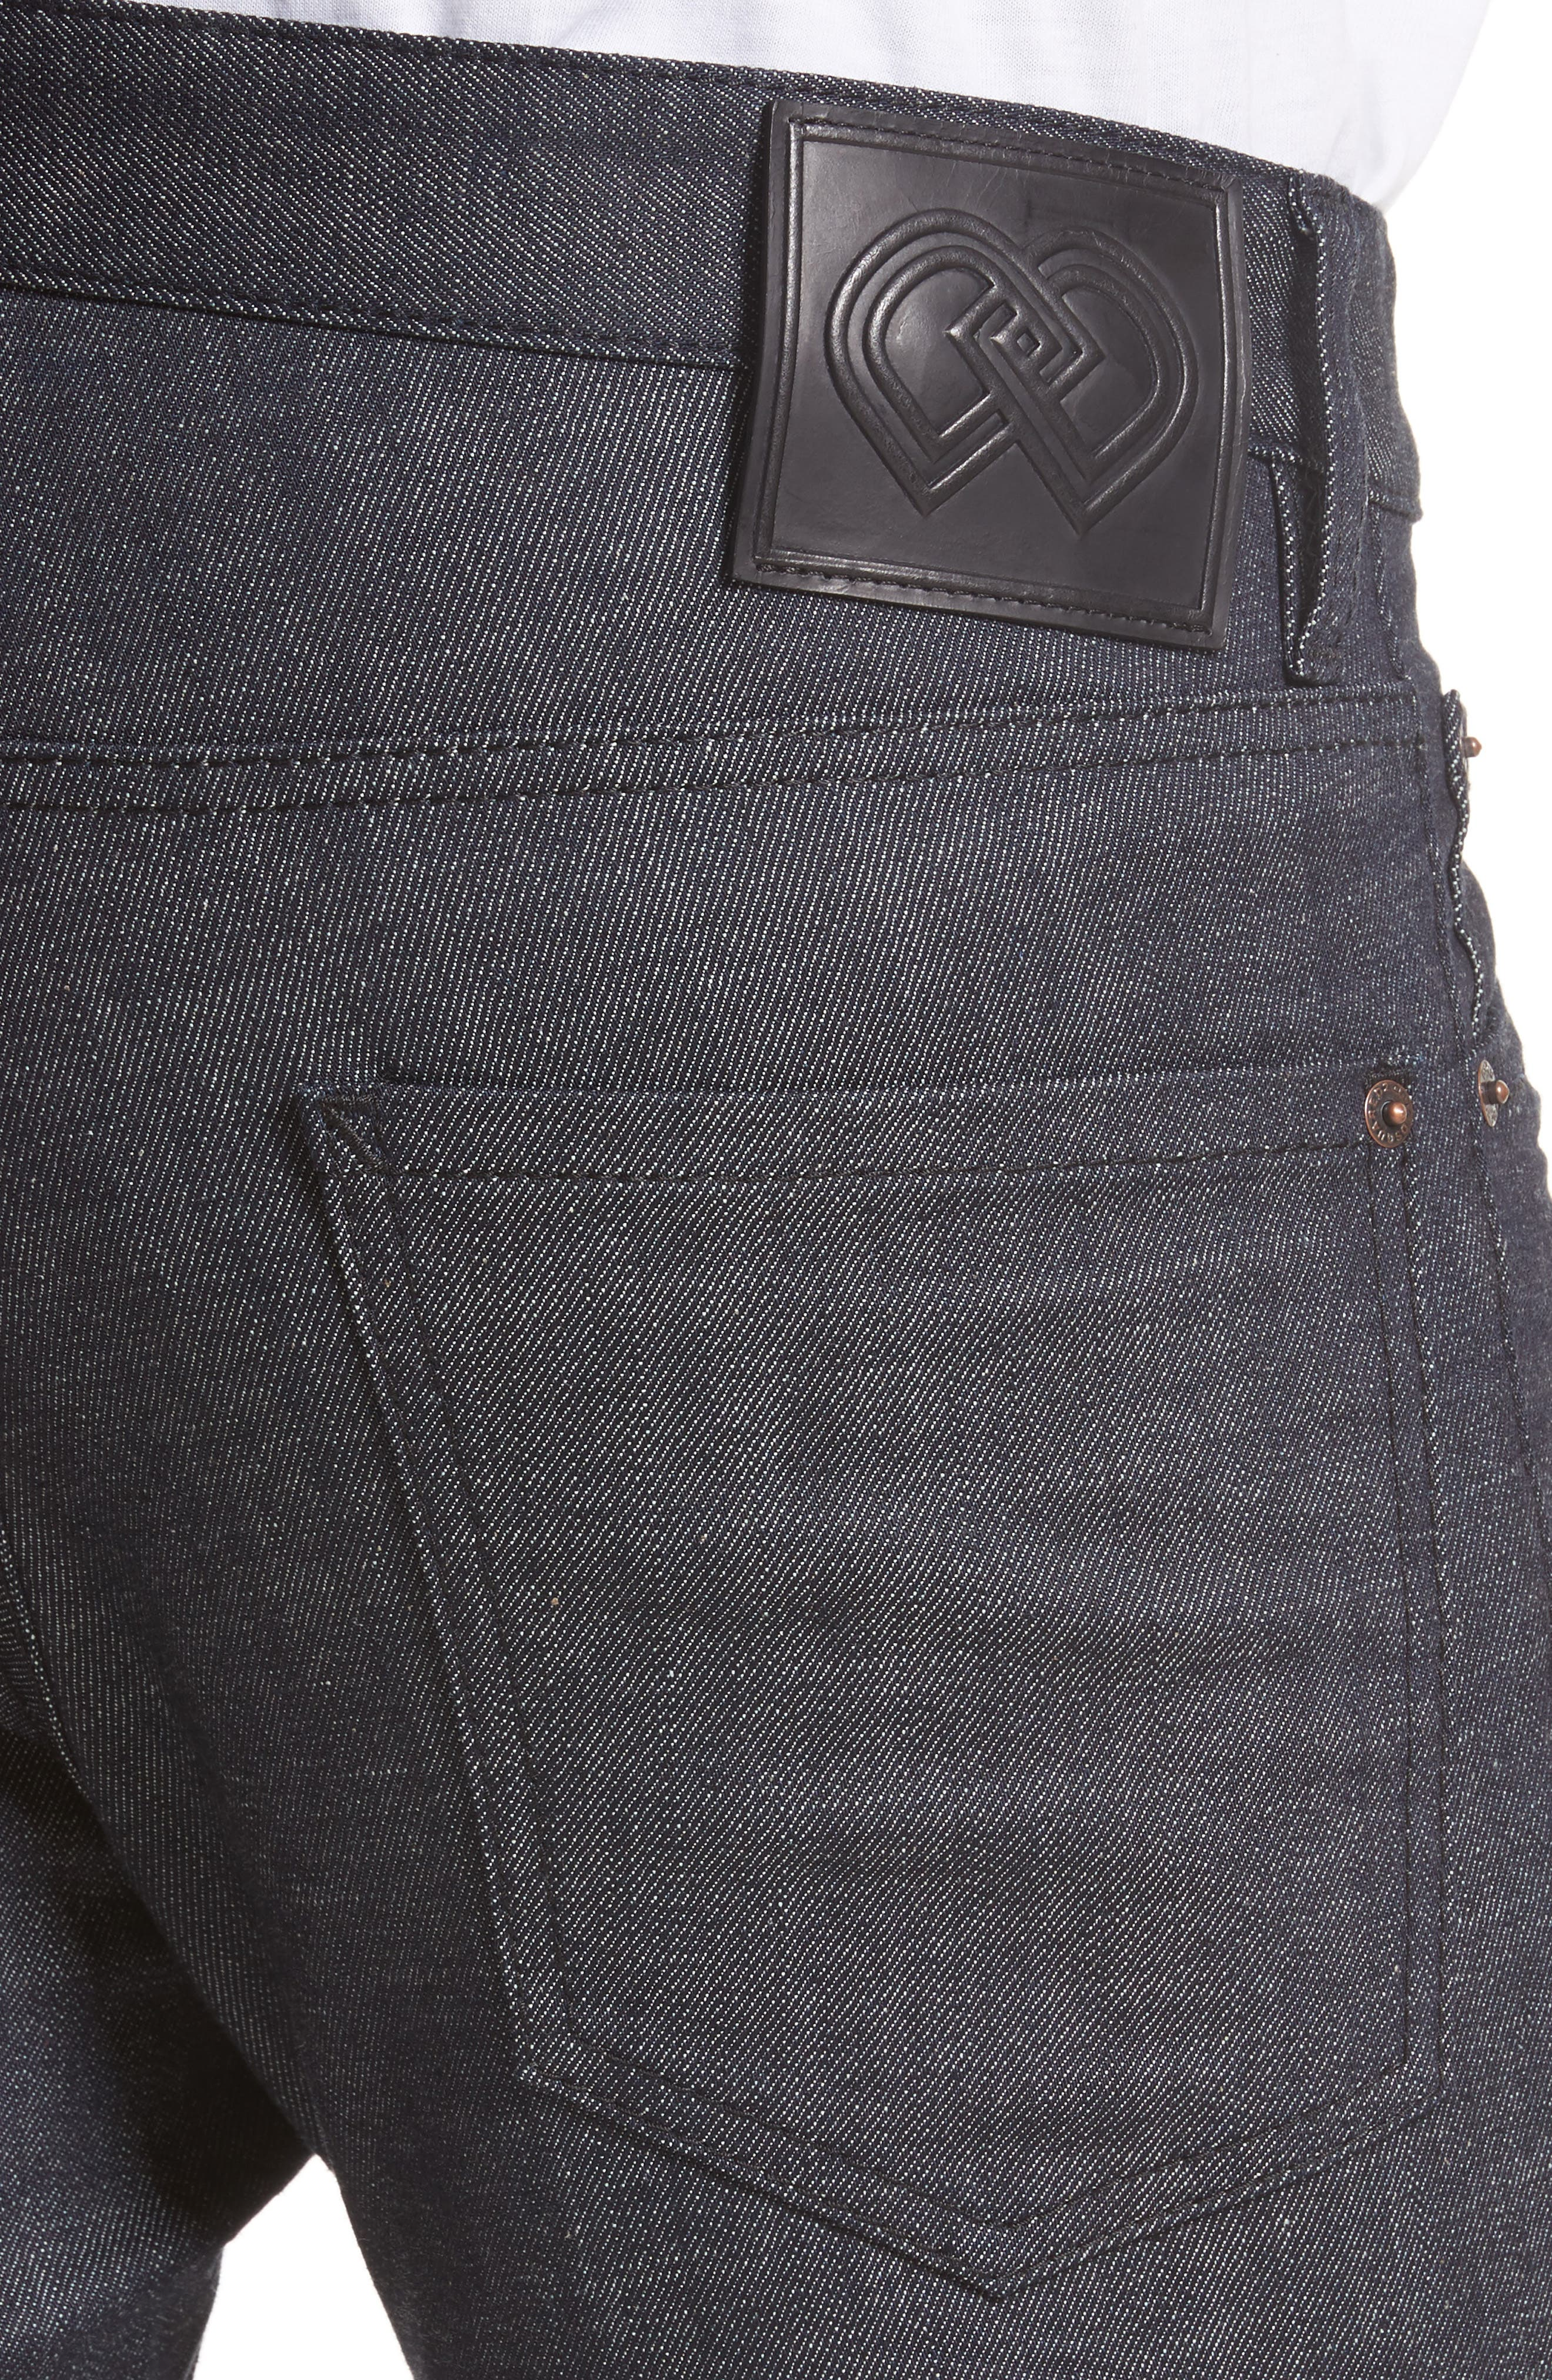 Cool Guy Jeans,                             Alternate thumbnail 5, color,                             Blue